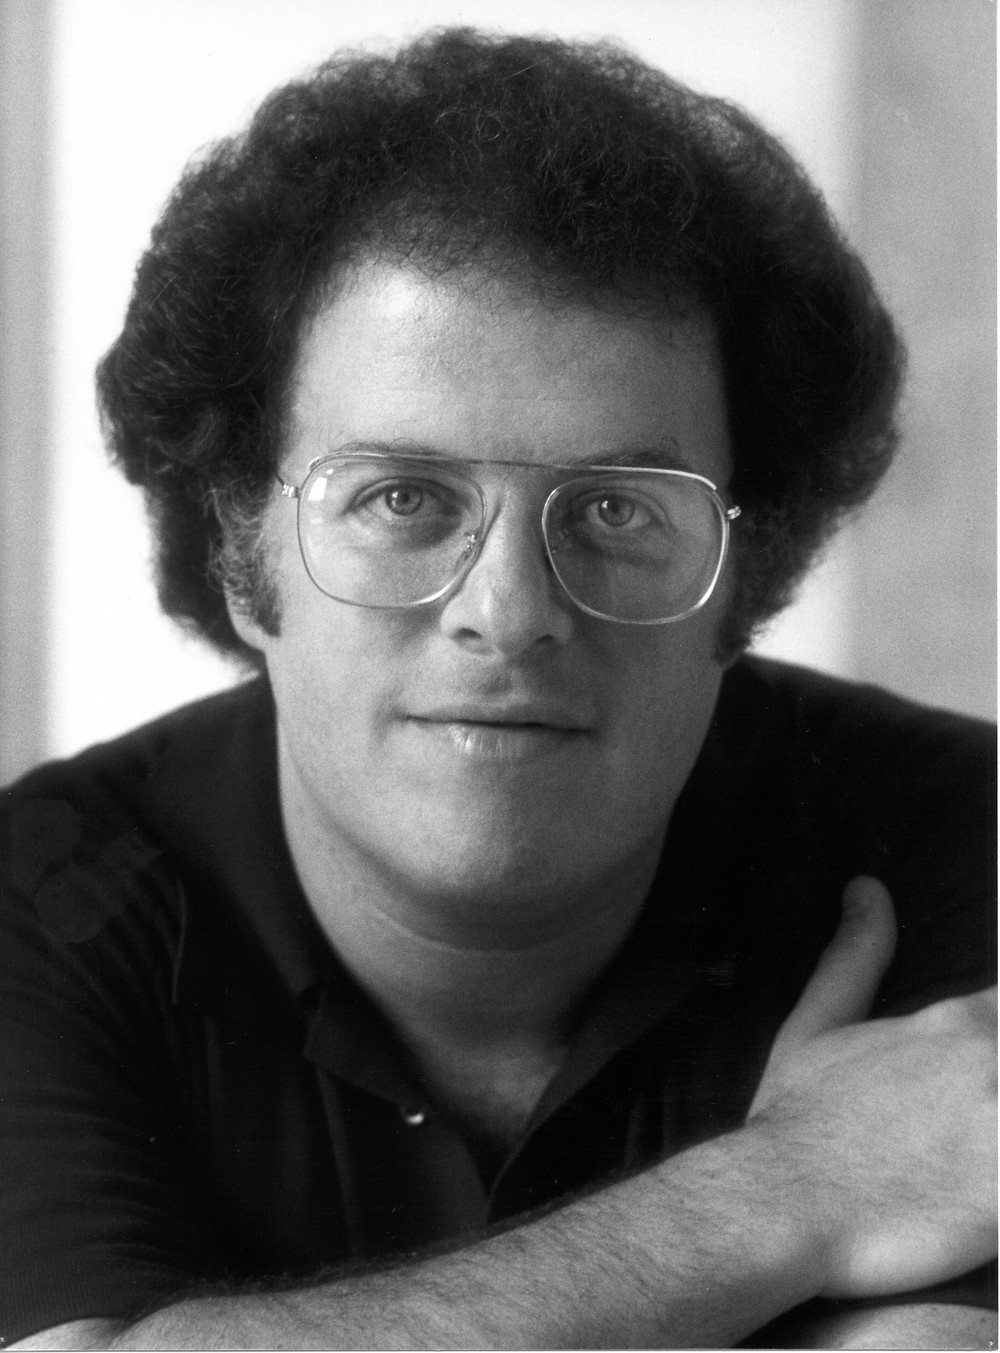 James Levine - The Culture News